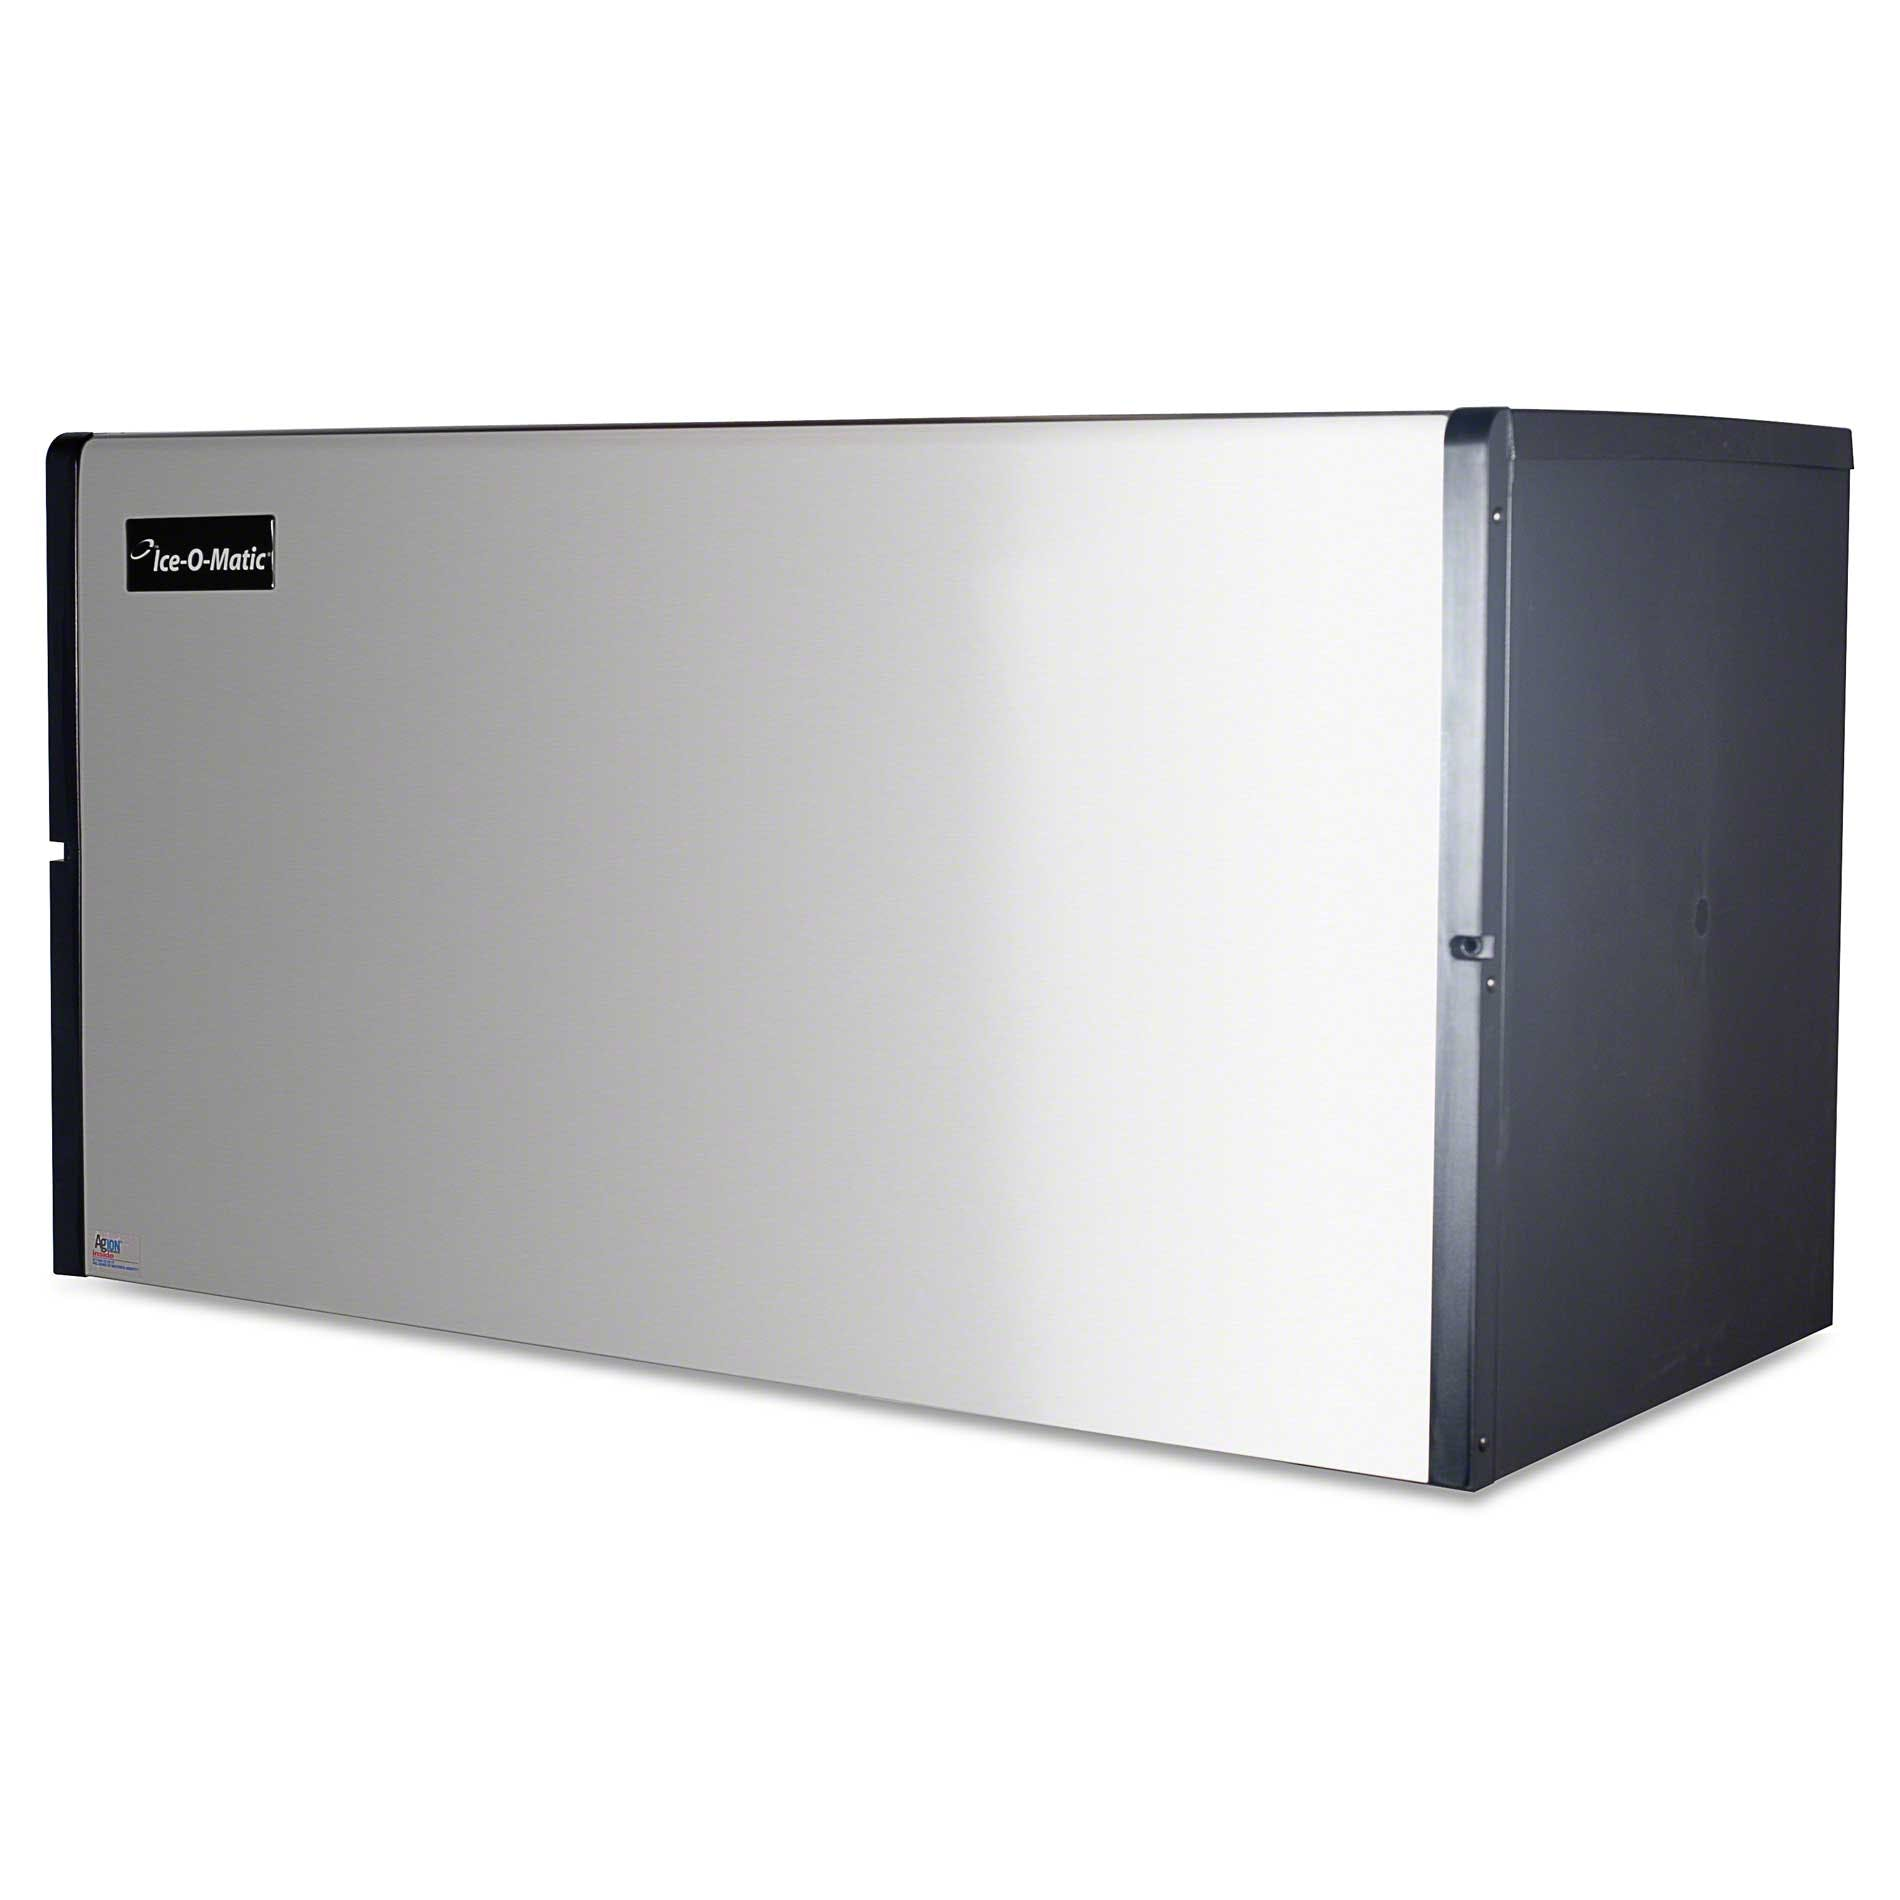 Ice-O-Matic - ICE1406FR 1391 lb Full Cube Ice Machine Ice machine sold by Food Service Warehouse